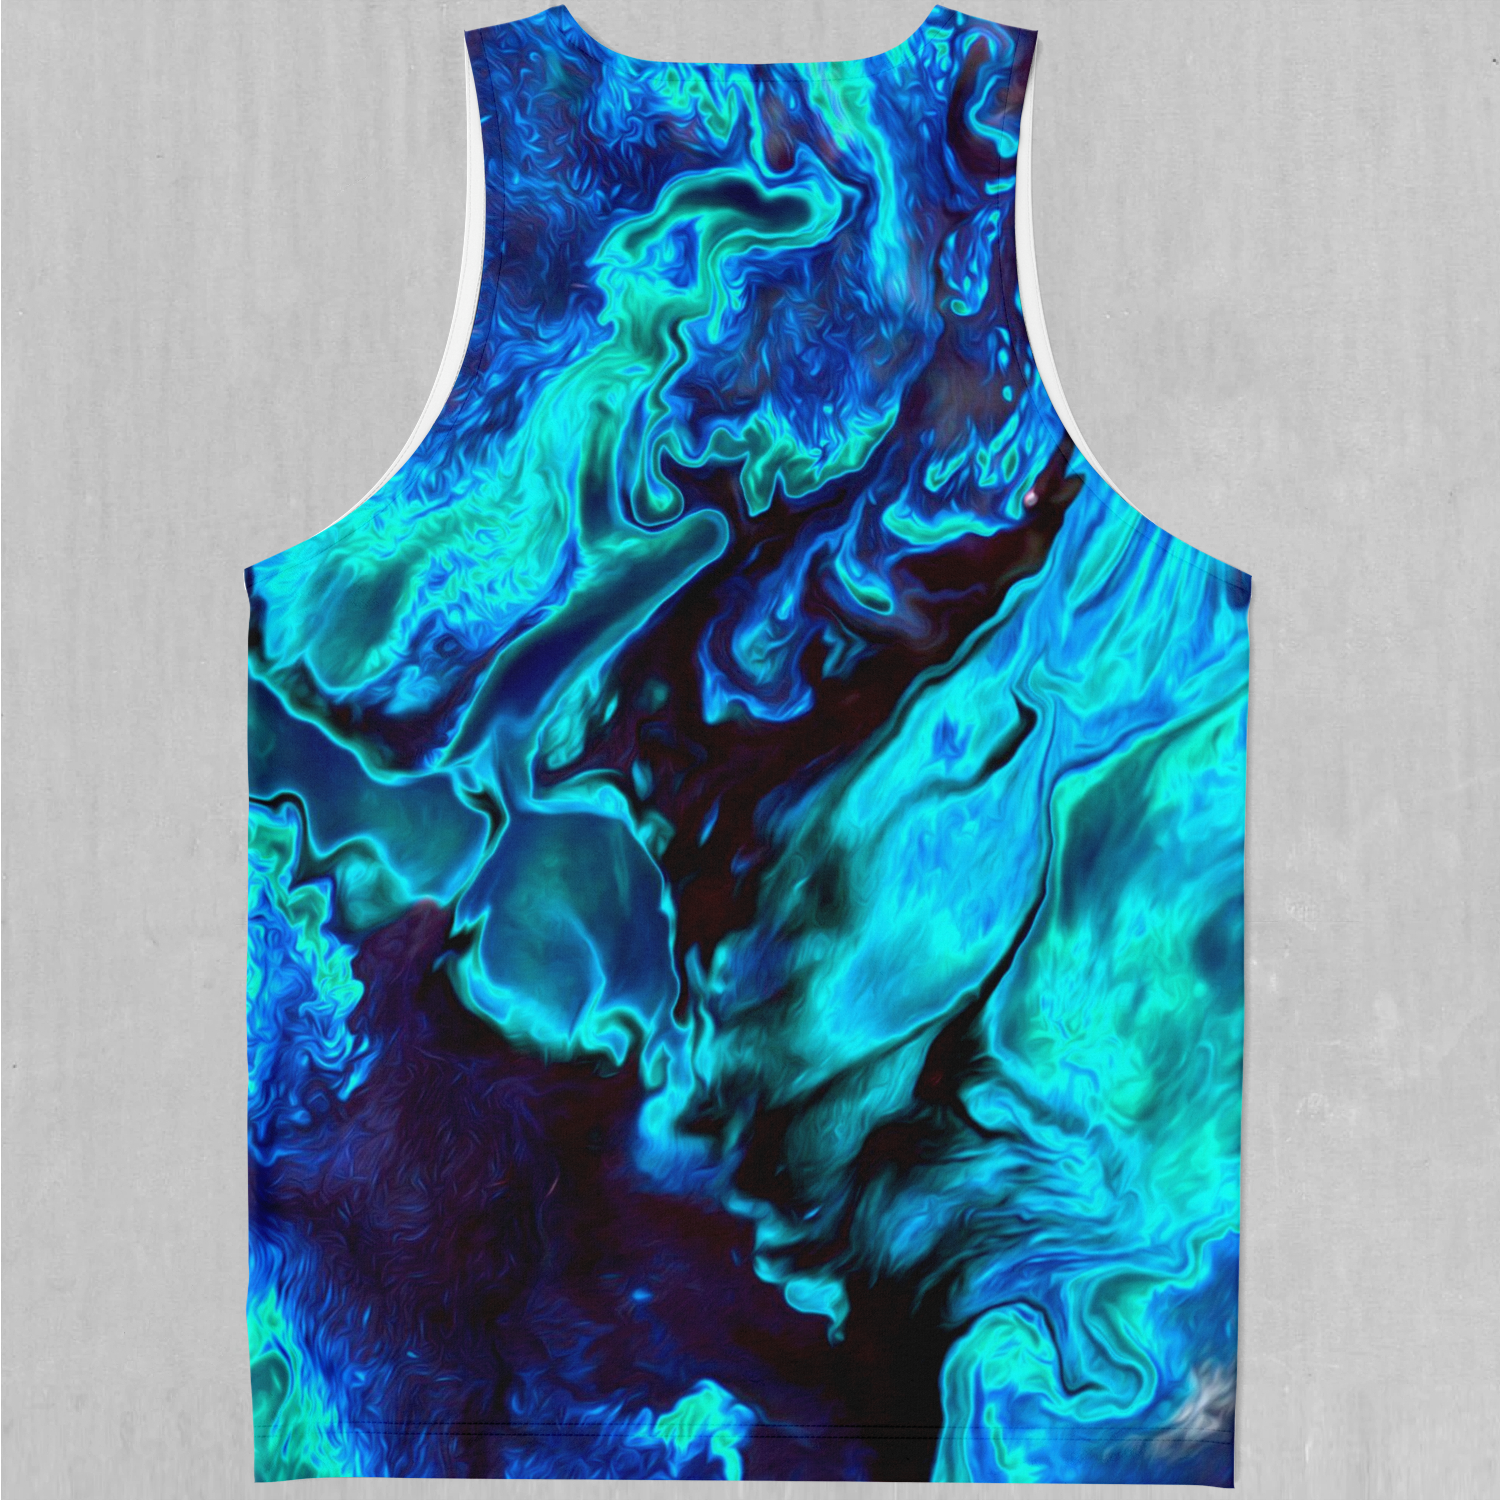 Enigma Sea Men's Tank Top - EDM Rave Festival Street Wear Abstract Apparel